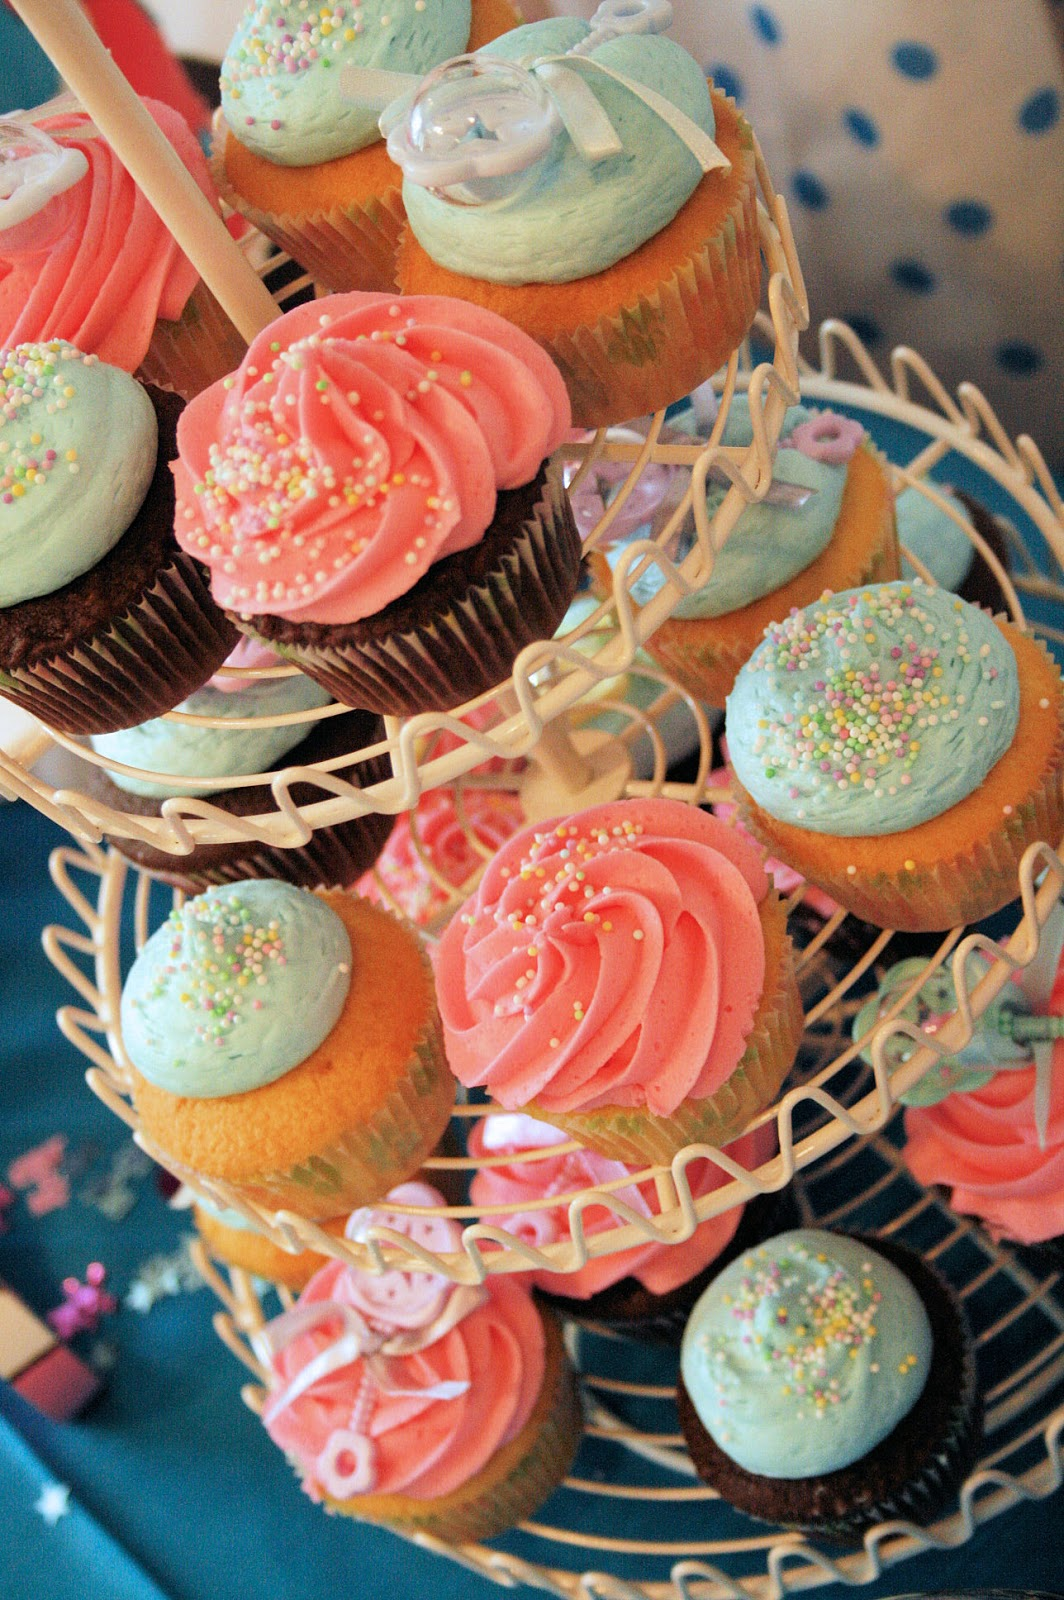 Whether for a baby shower or wedding